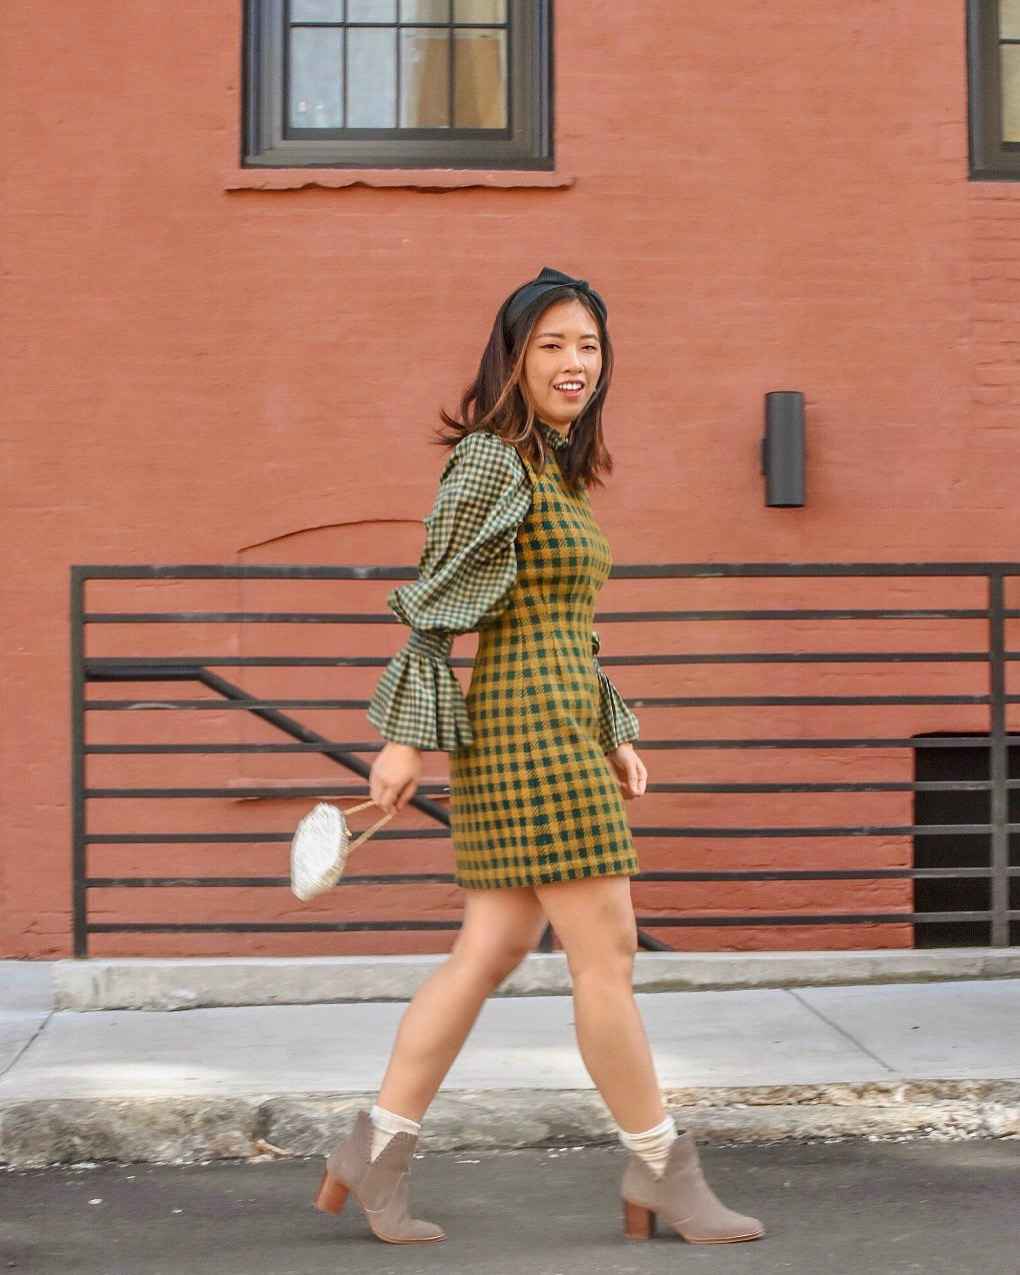 GOSSIP GIRL X CLUELESS OUTFIT (AS MY FRIEND SAID HAHA) - only available on Rent the Runway as of now :(